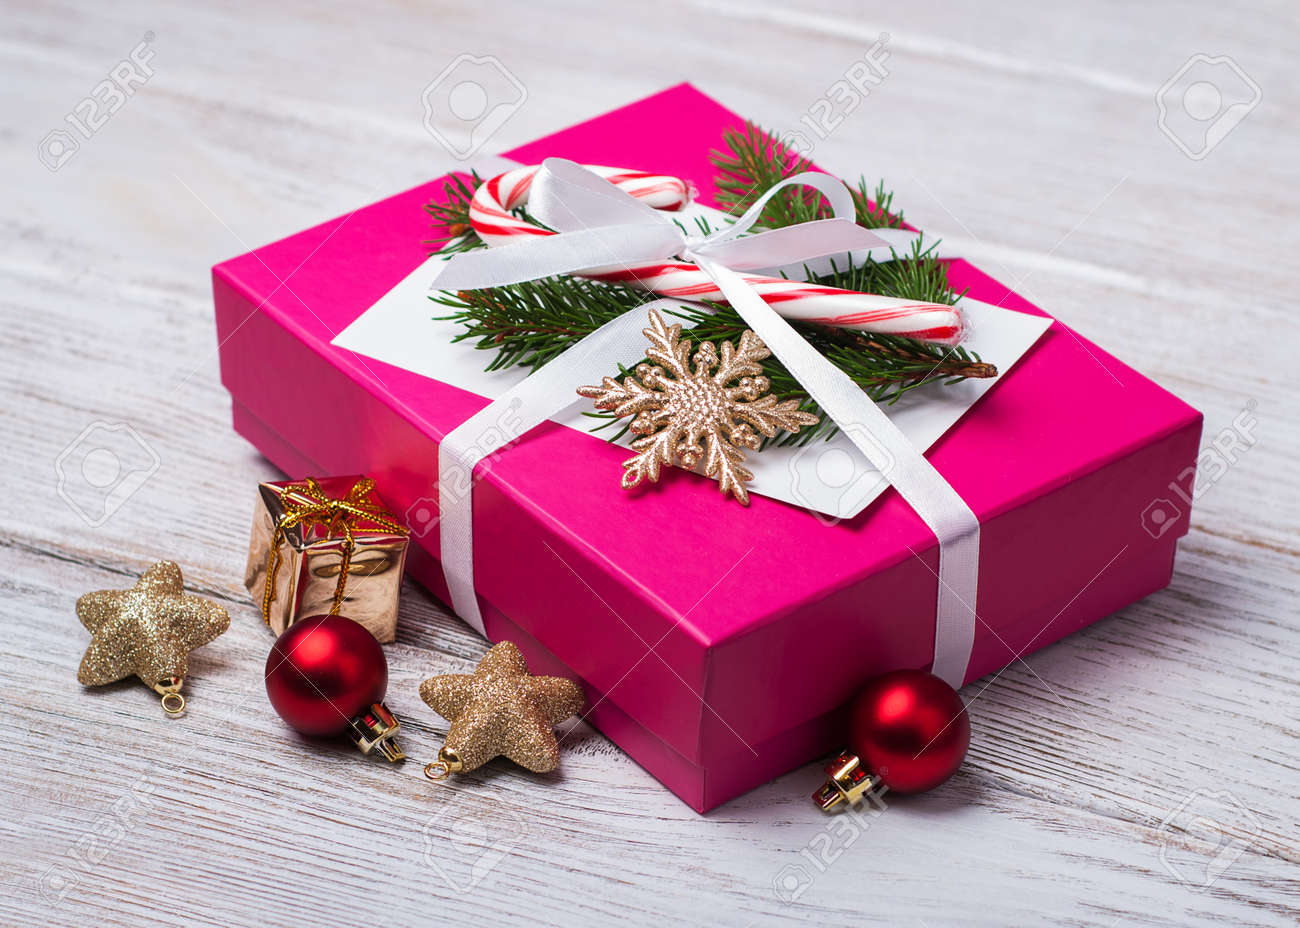 Christmas Gift Box And Decorations On A Old Wooden Table Stock Photo ...